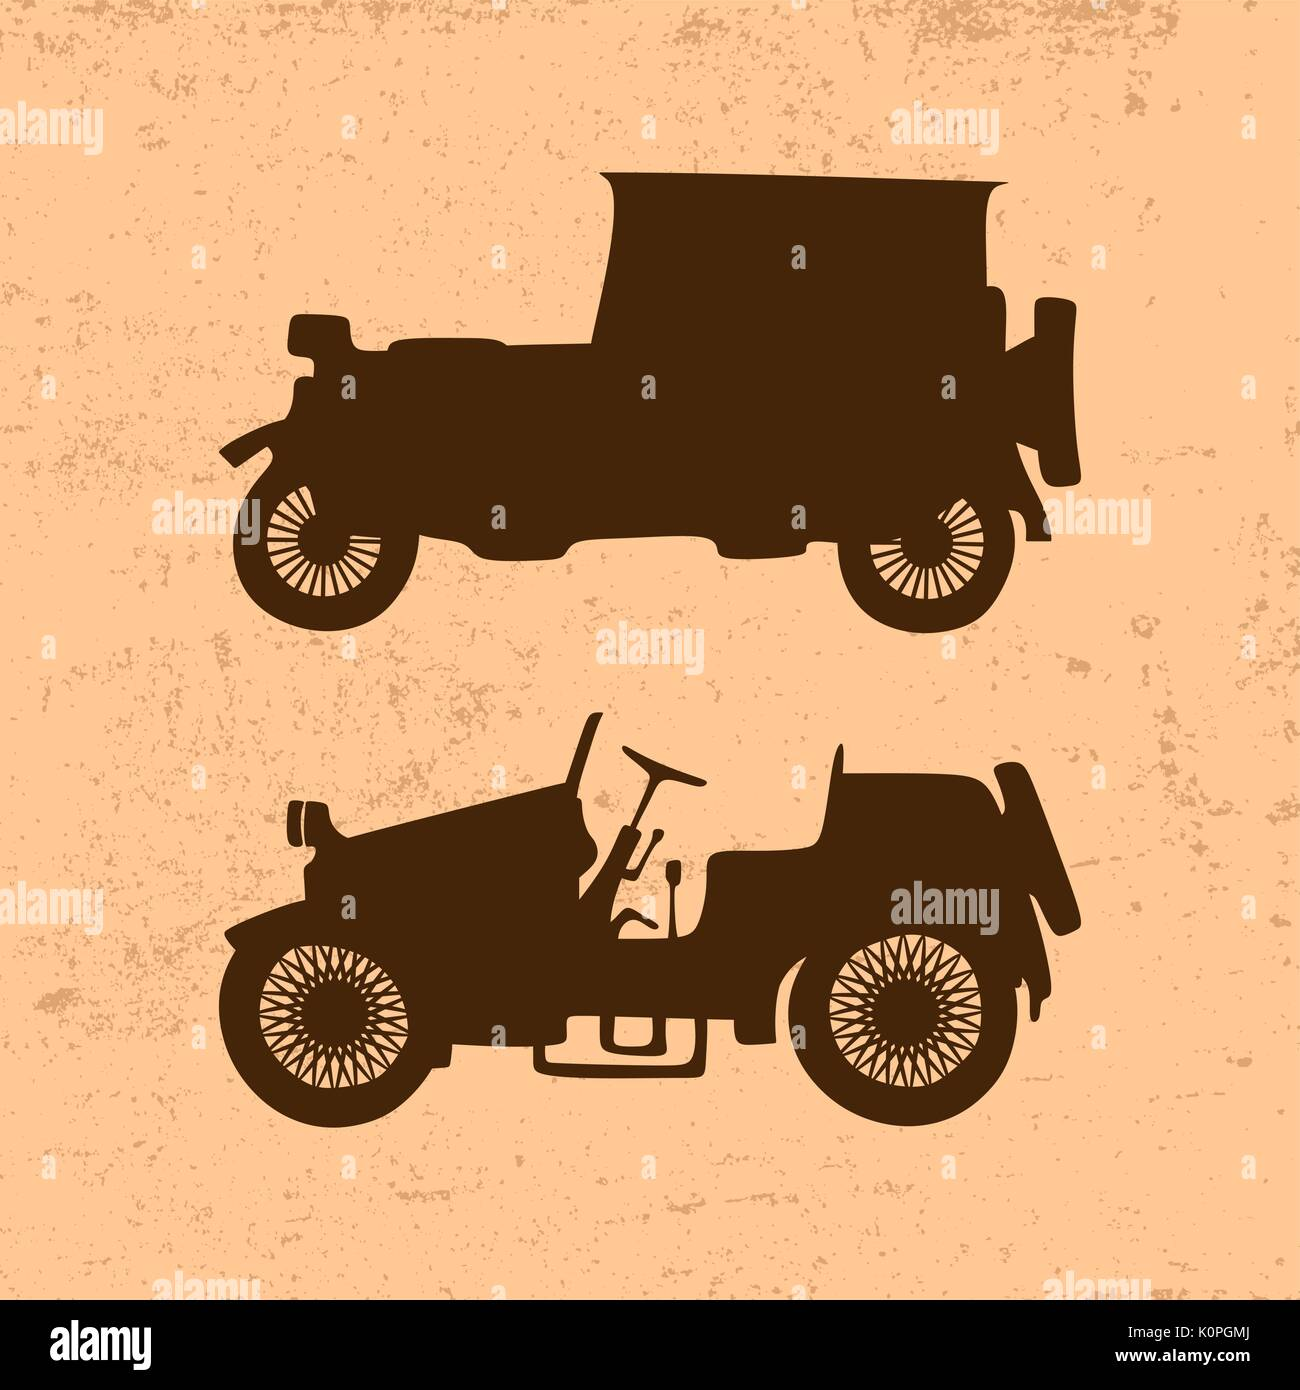 Silhouettes of vintage retro cars - Stock Vector